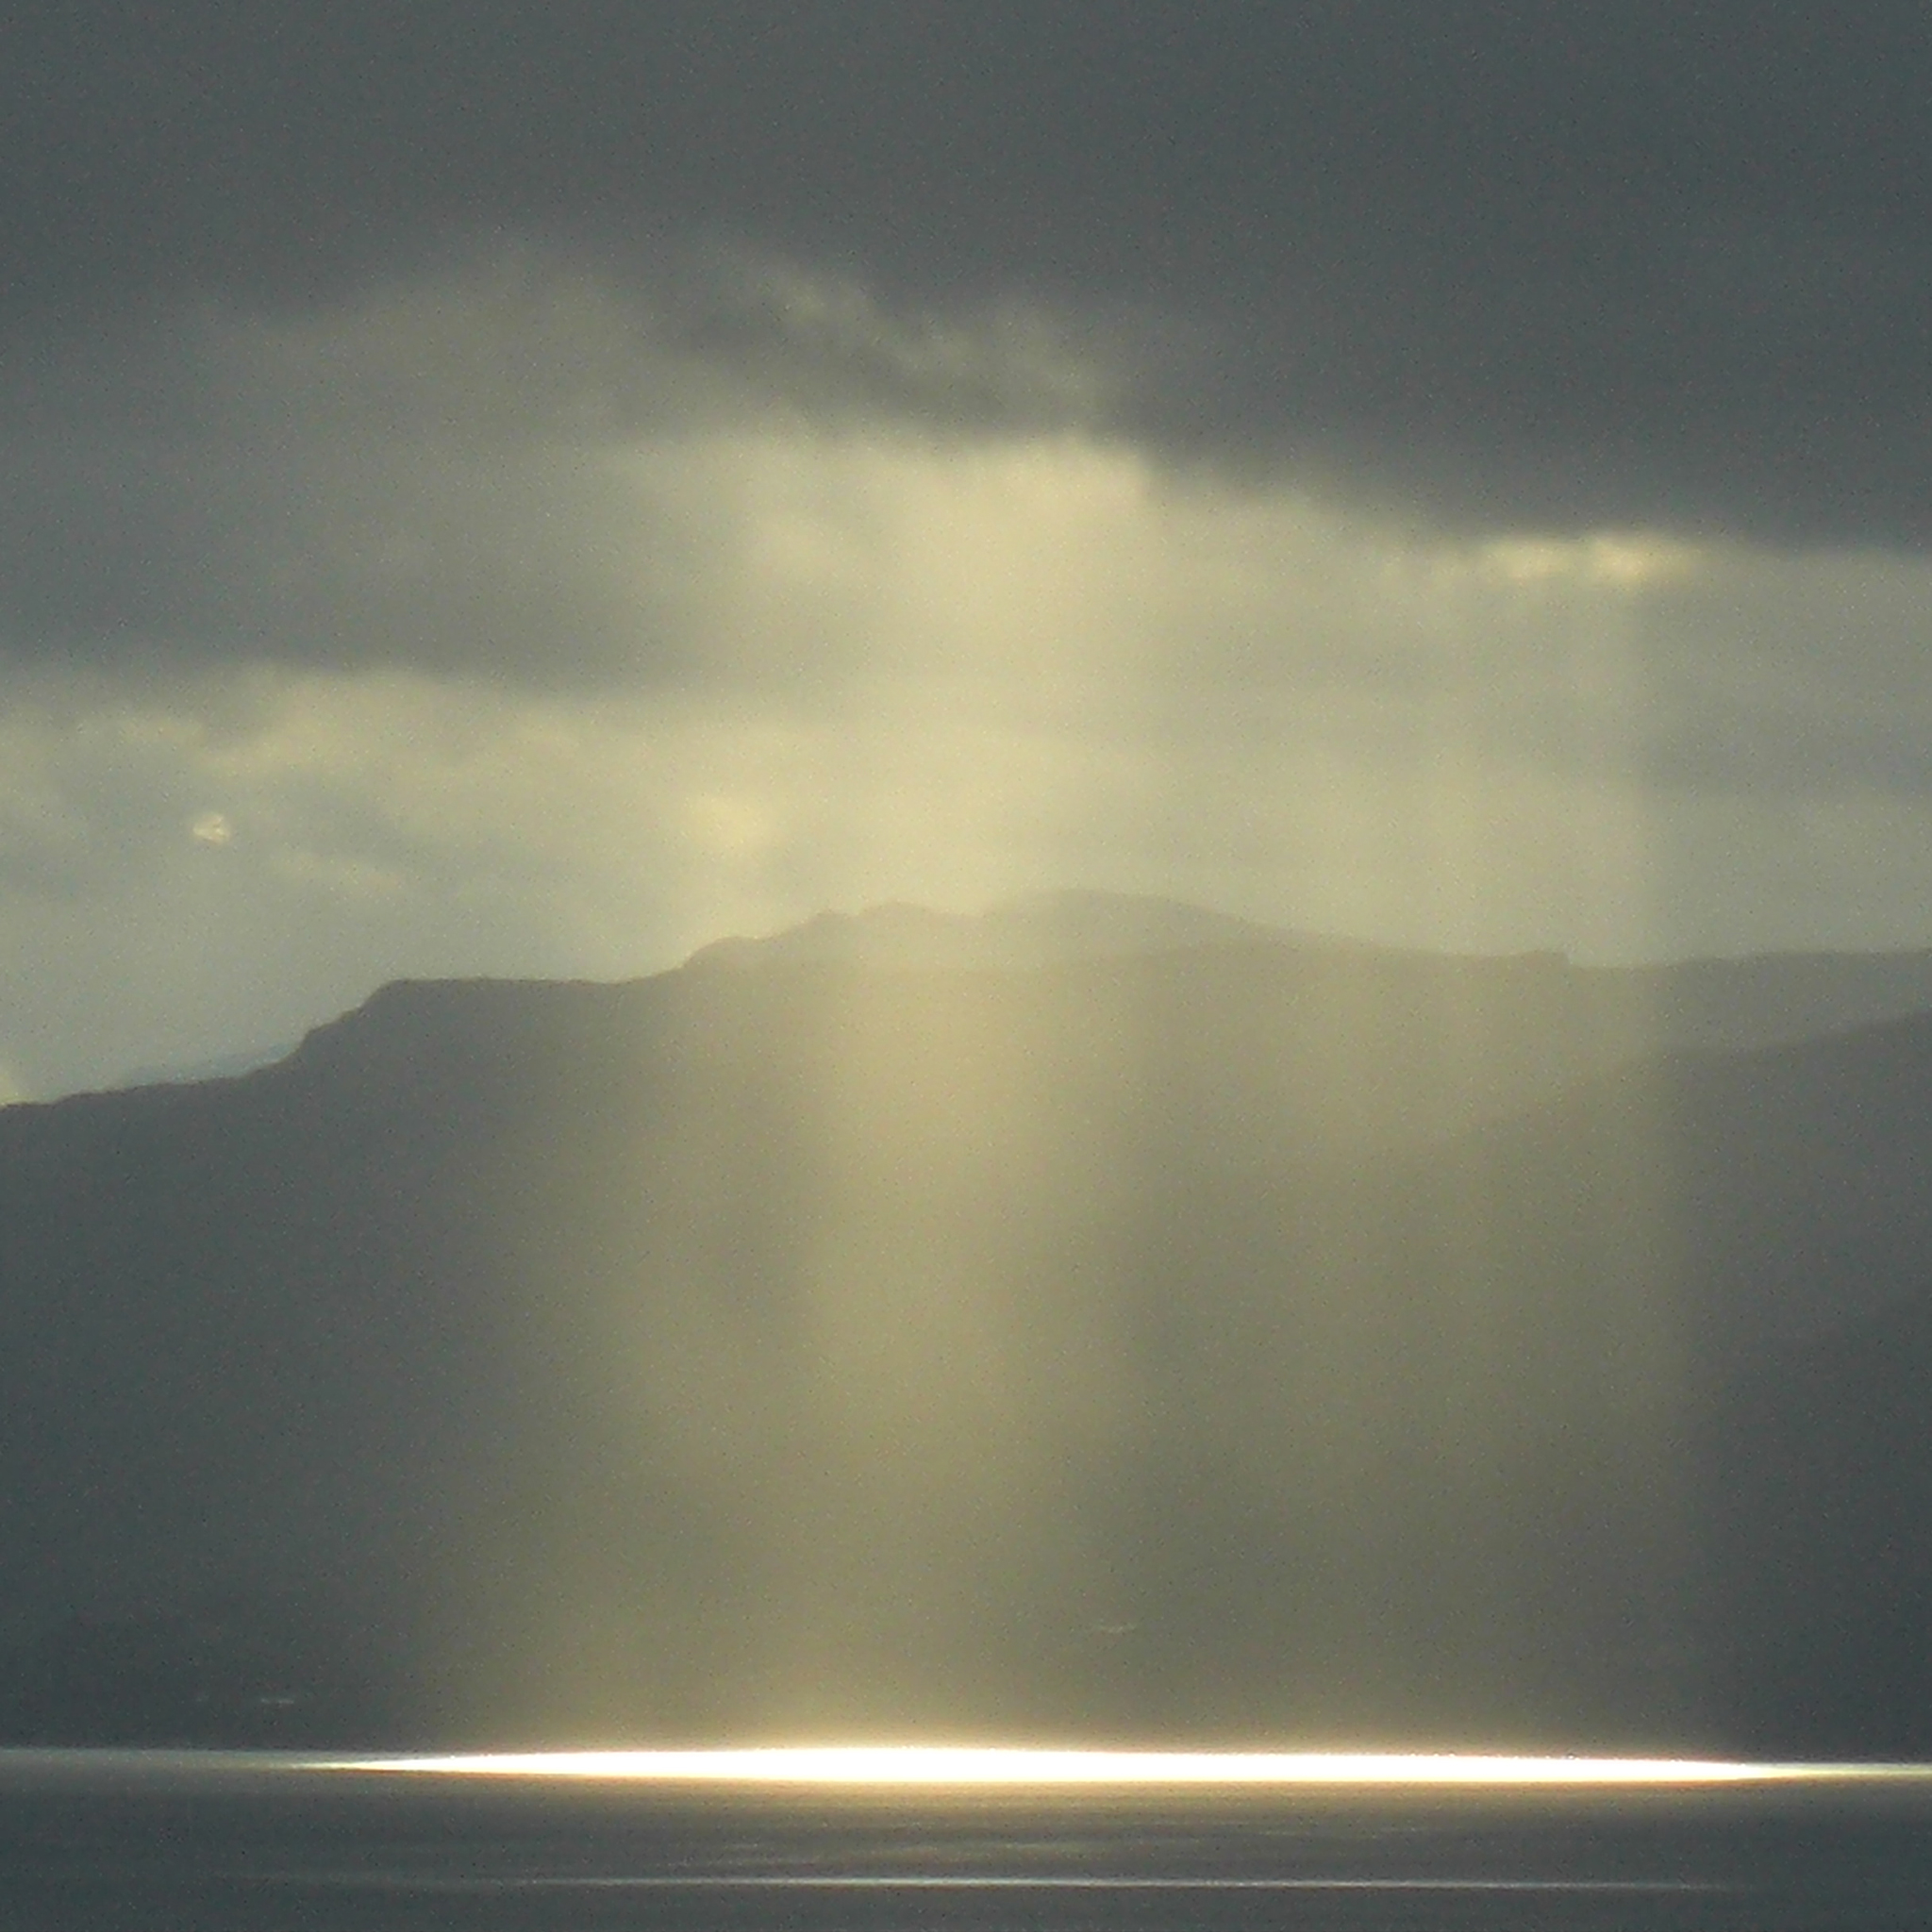 Sunlight In Evaporation From Sea 3Wallpapers iPad Retina Sunlight In Evaporation From Sea   iPad